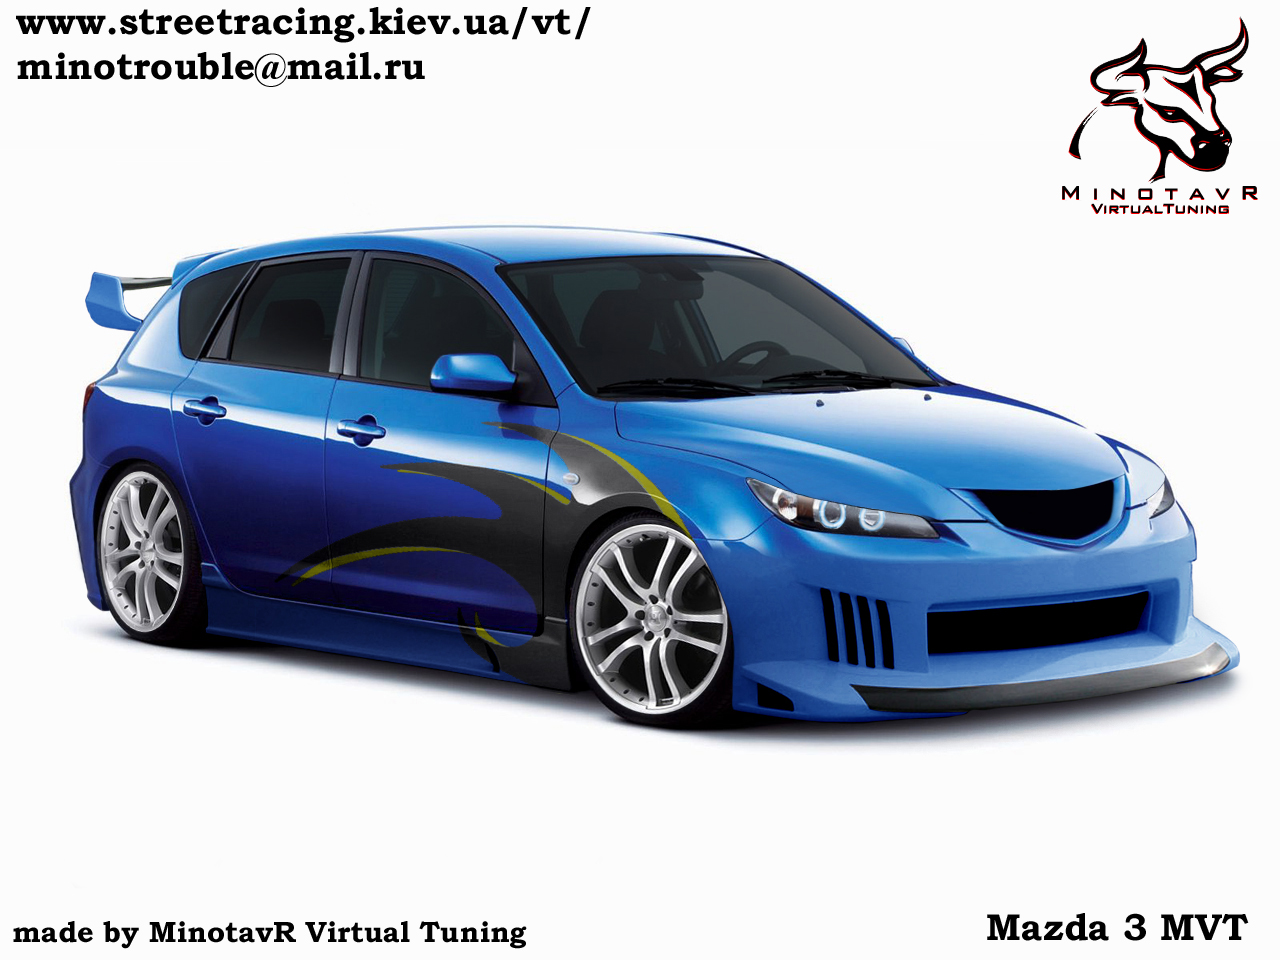 3dtuning of mazda 3 5 door hatchback 2004. Black Bedroom Furniture Sets. Home Design Ideas